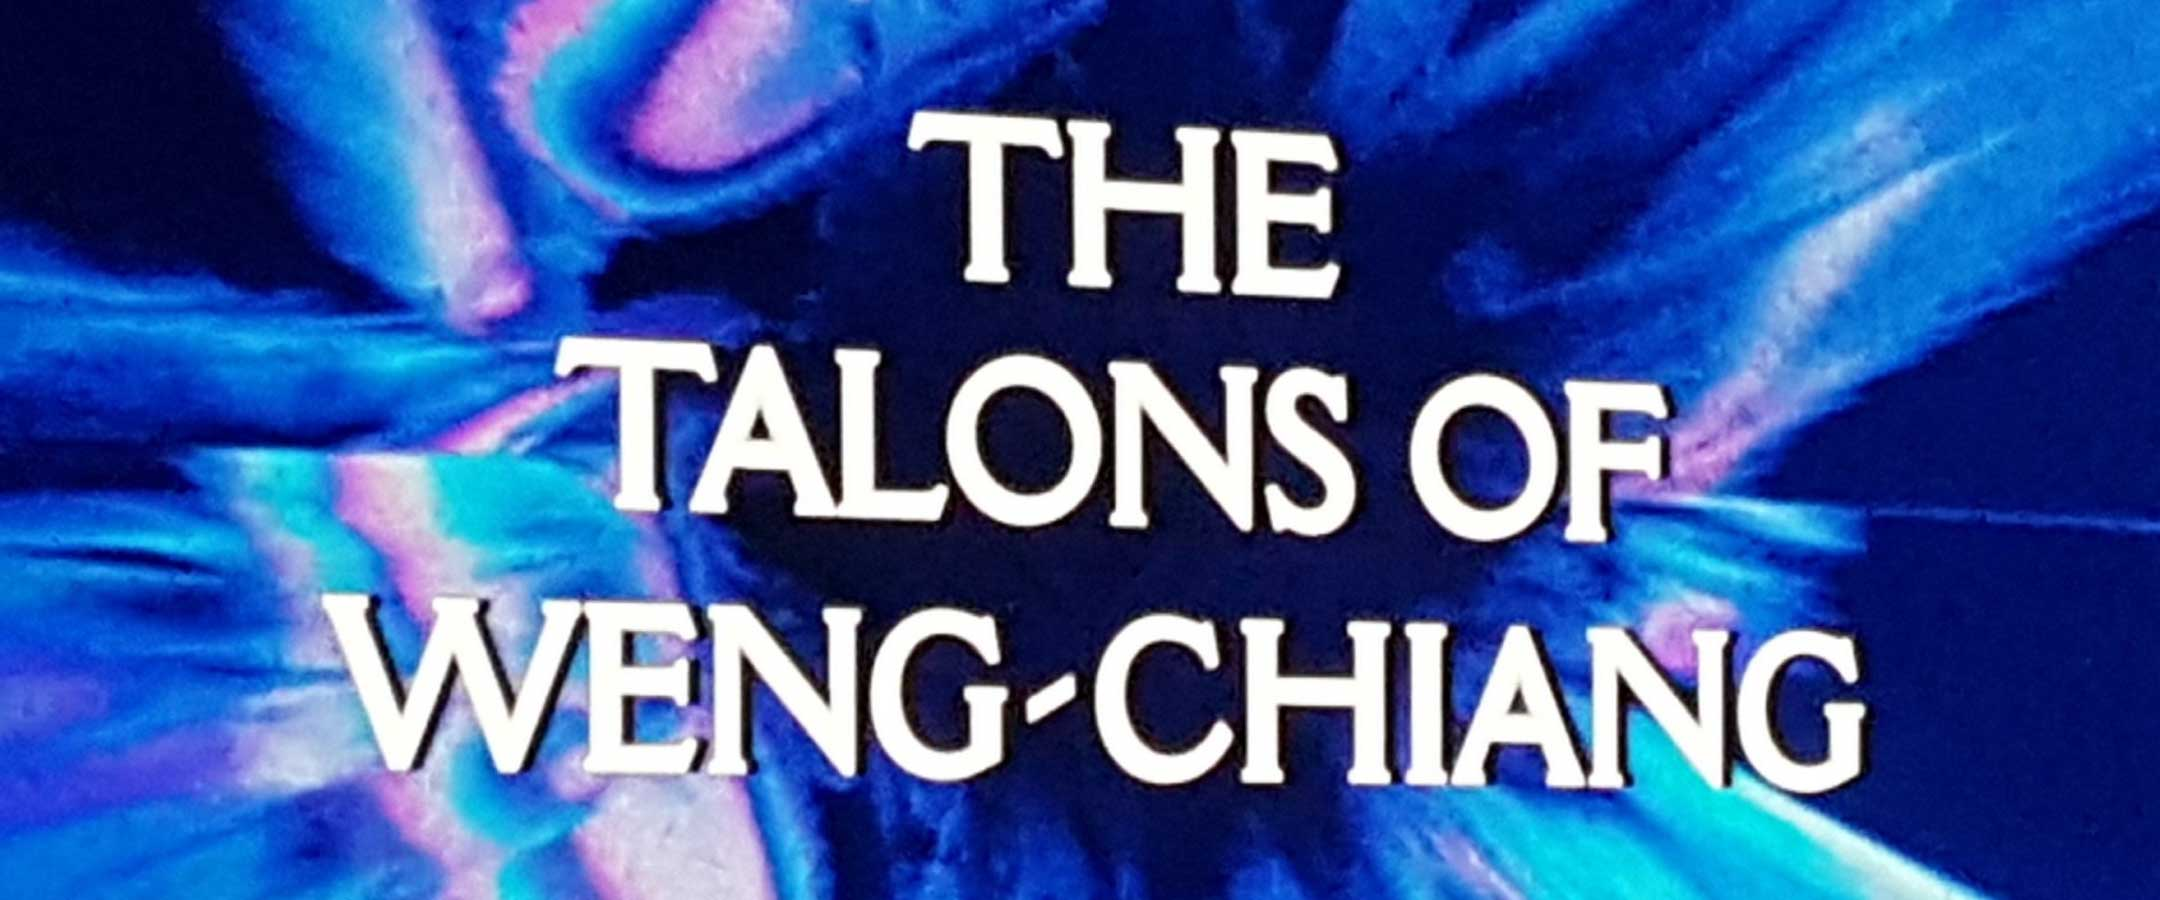 Report - The Talons of Weng-Chiang - BFI